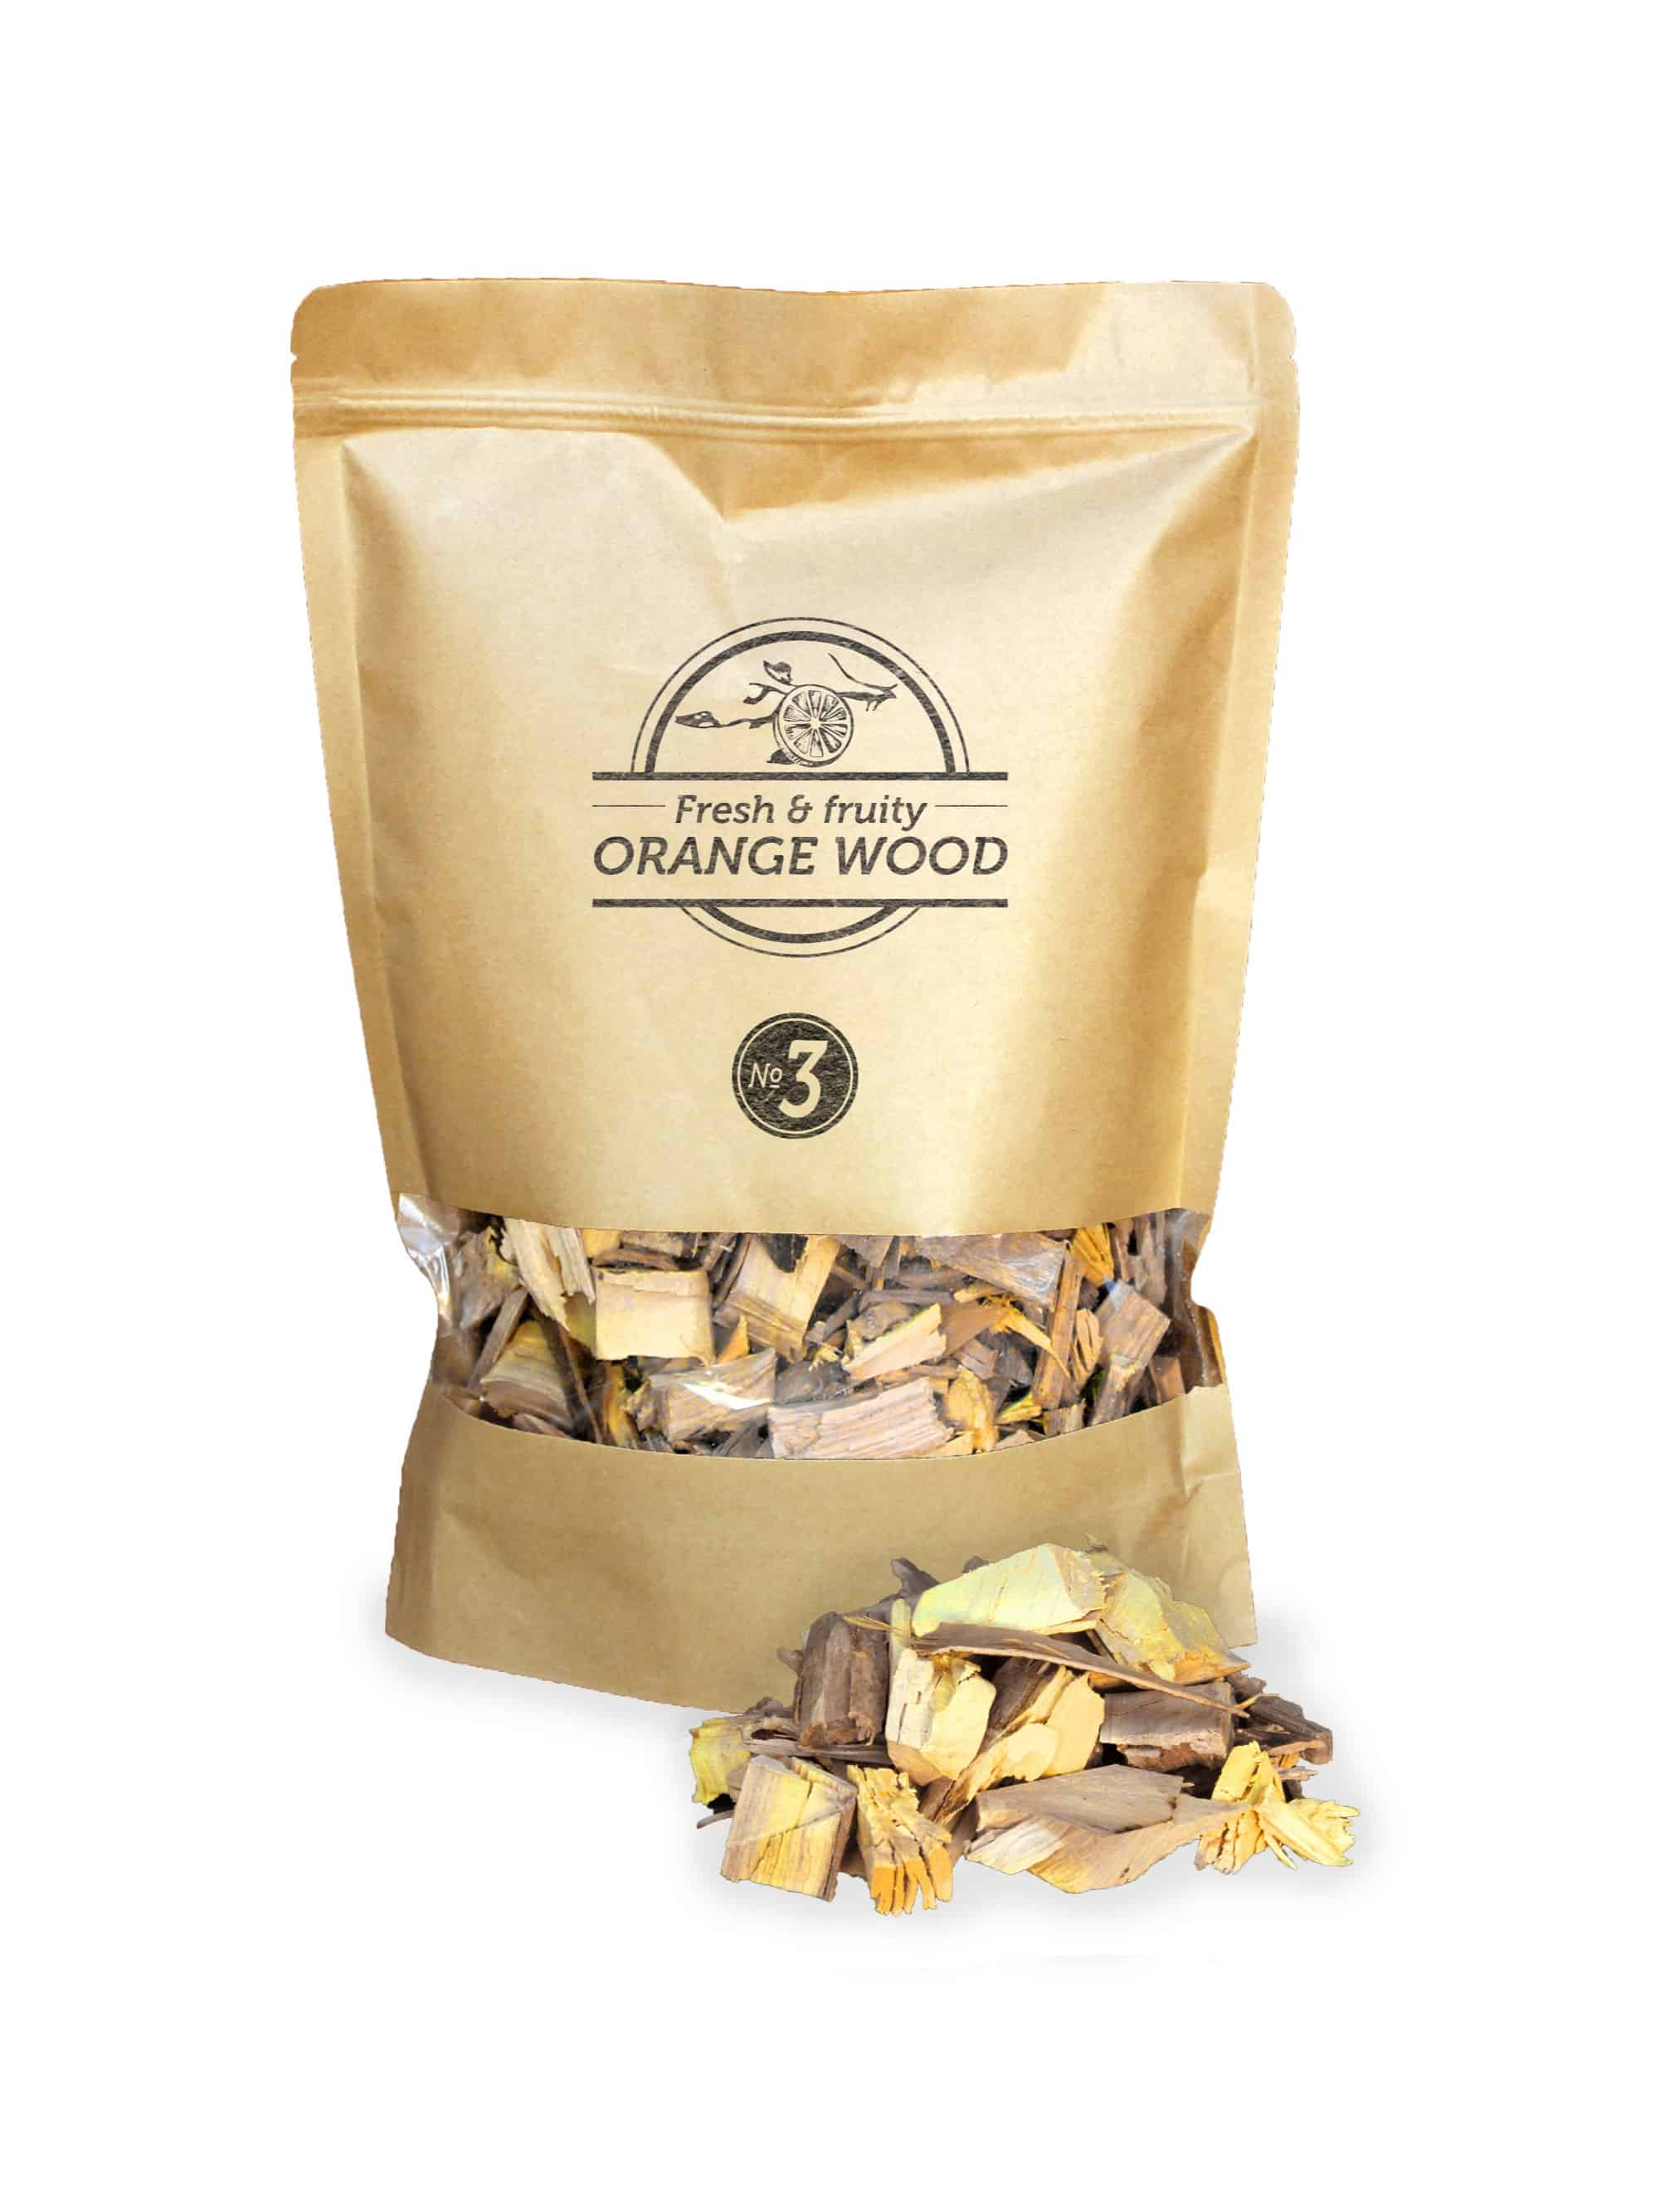 Smokey Olive Wood Orangewood Smoker BBQ Chips Grill